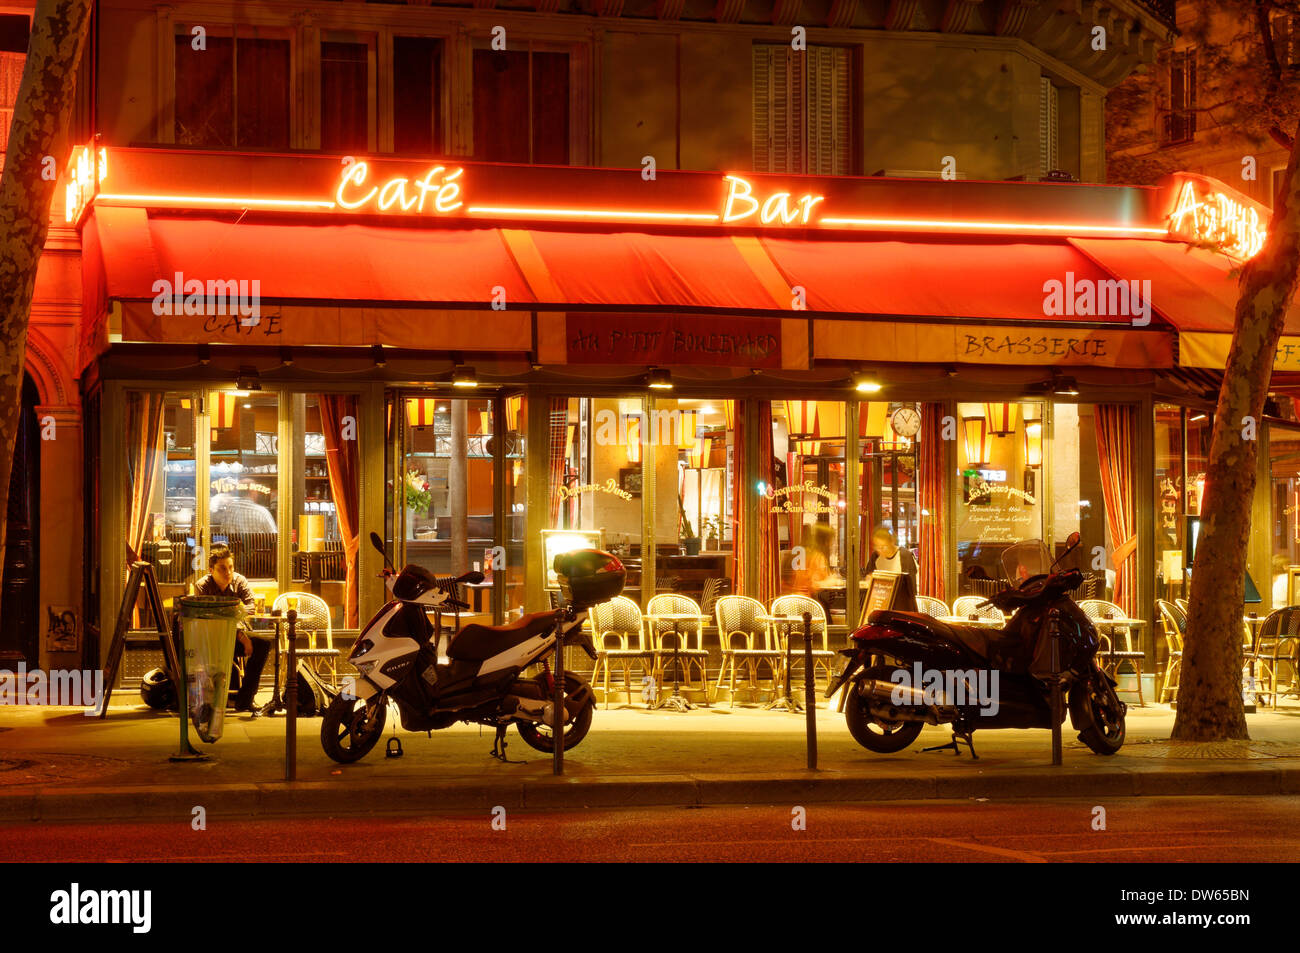 A brightly lit cafe in Paris at night - Stock Image